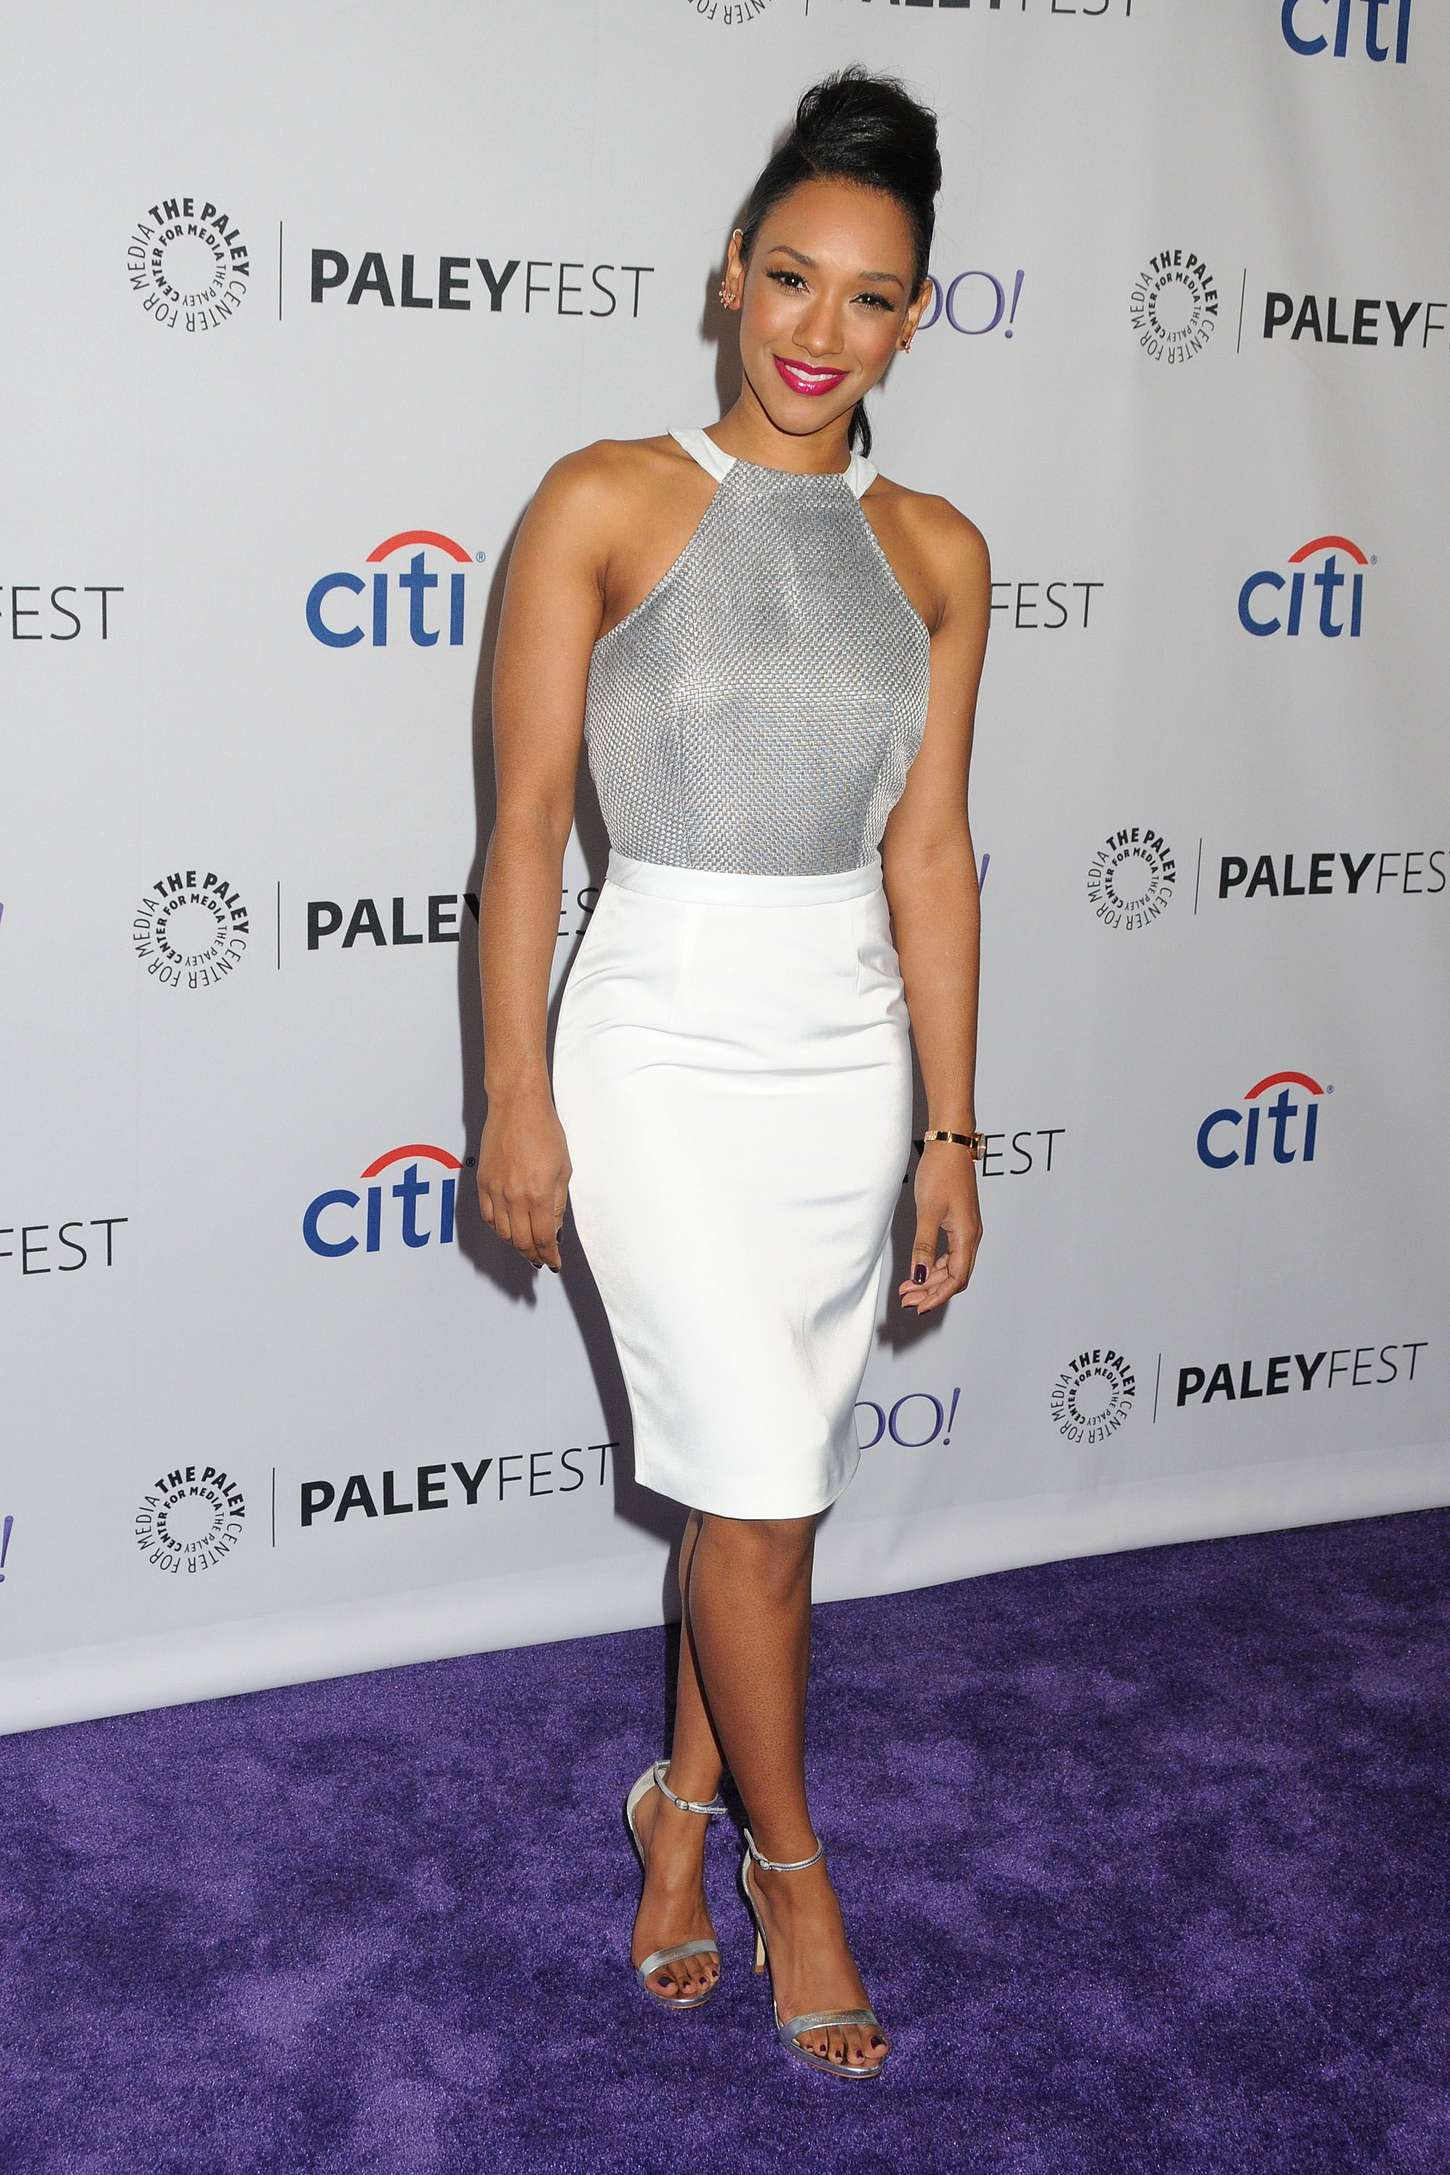 Candice Patton The Paley Center Flash Event for Paleyfest in Hollywood